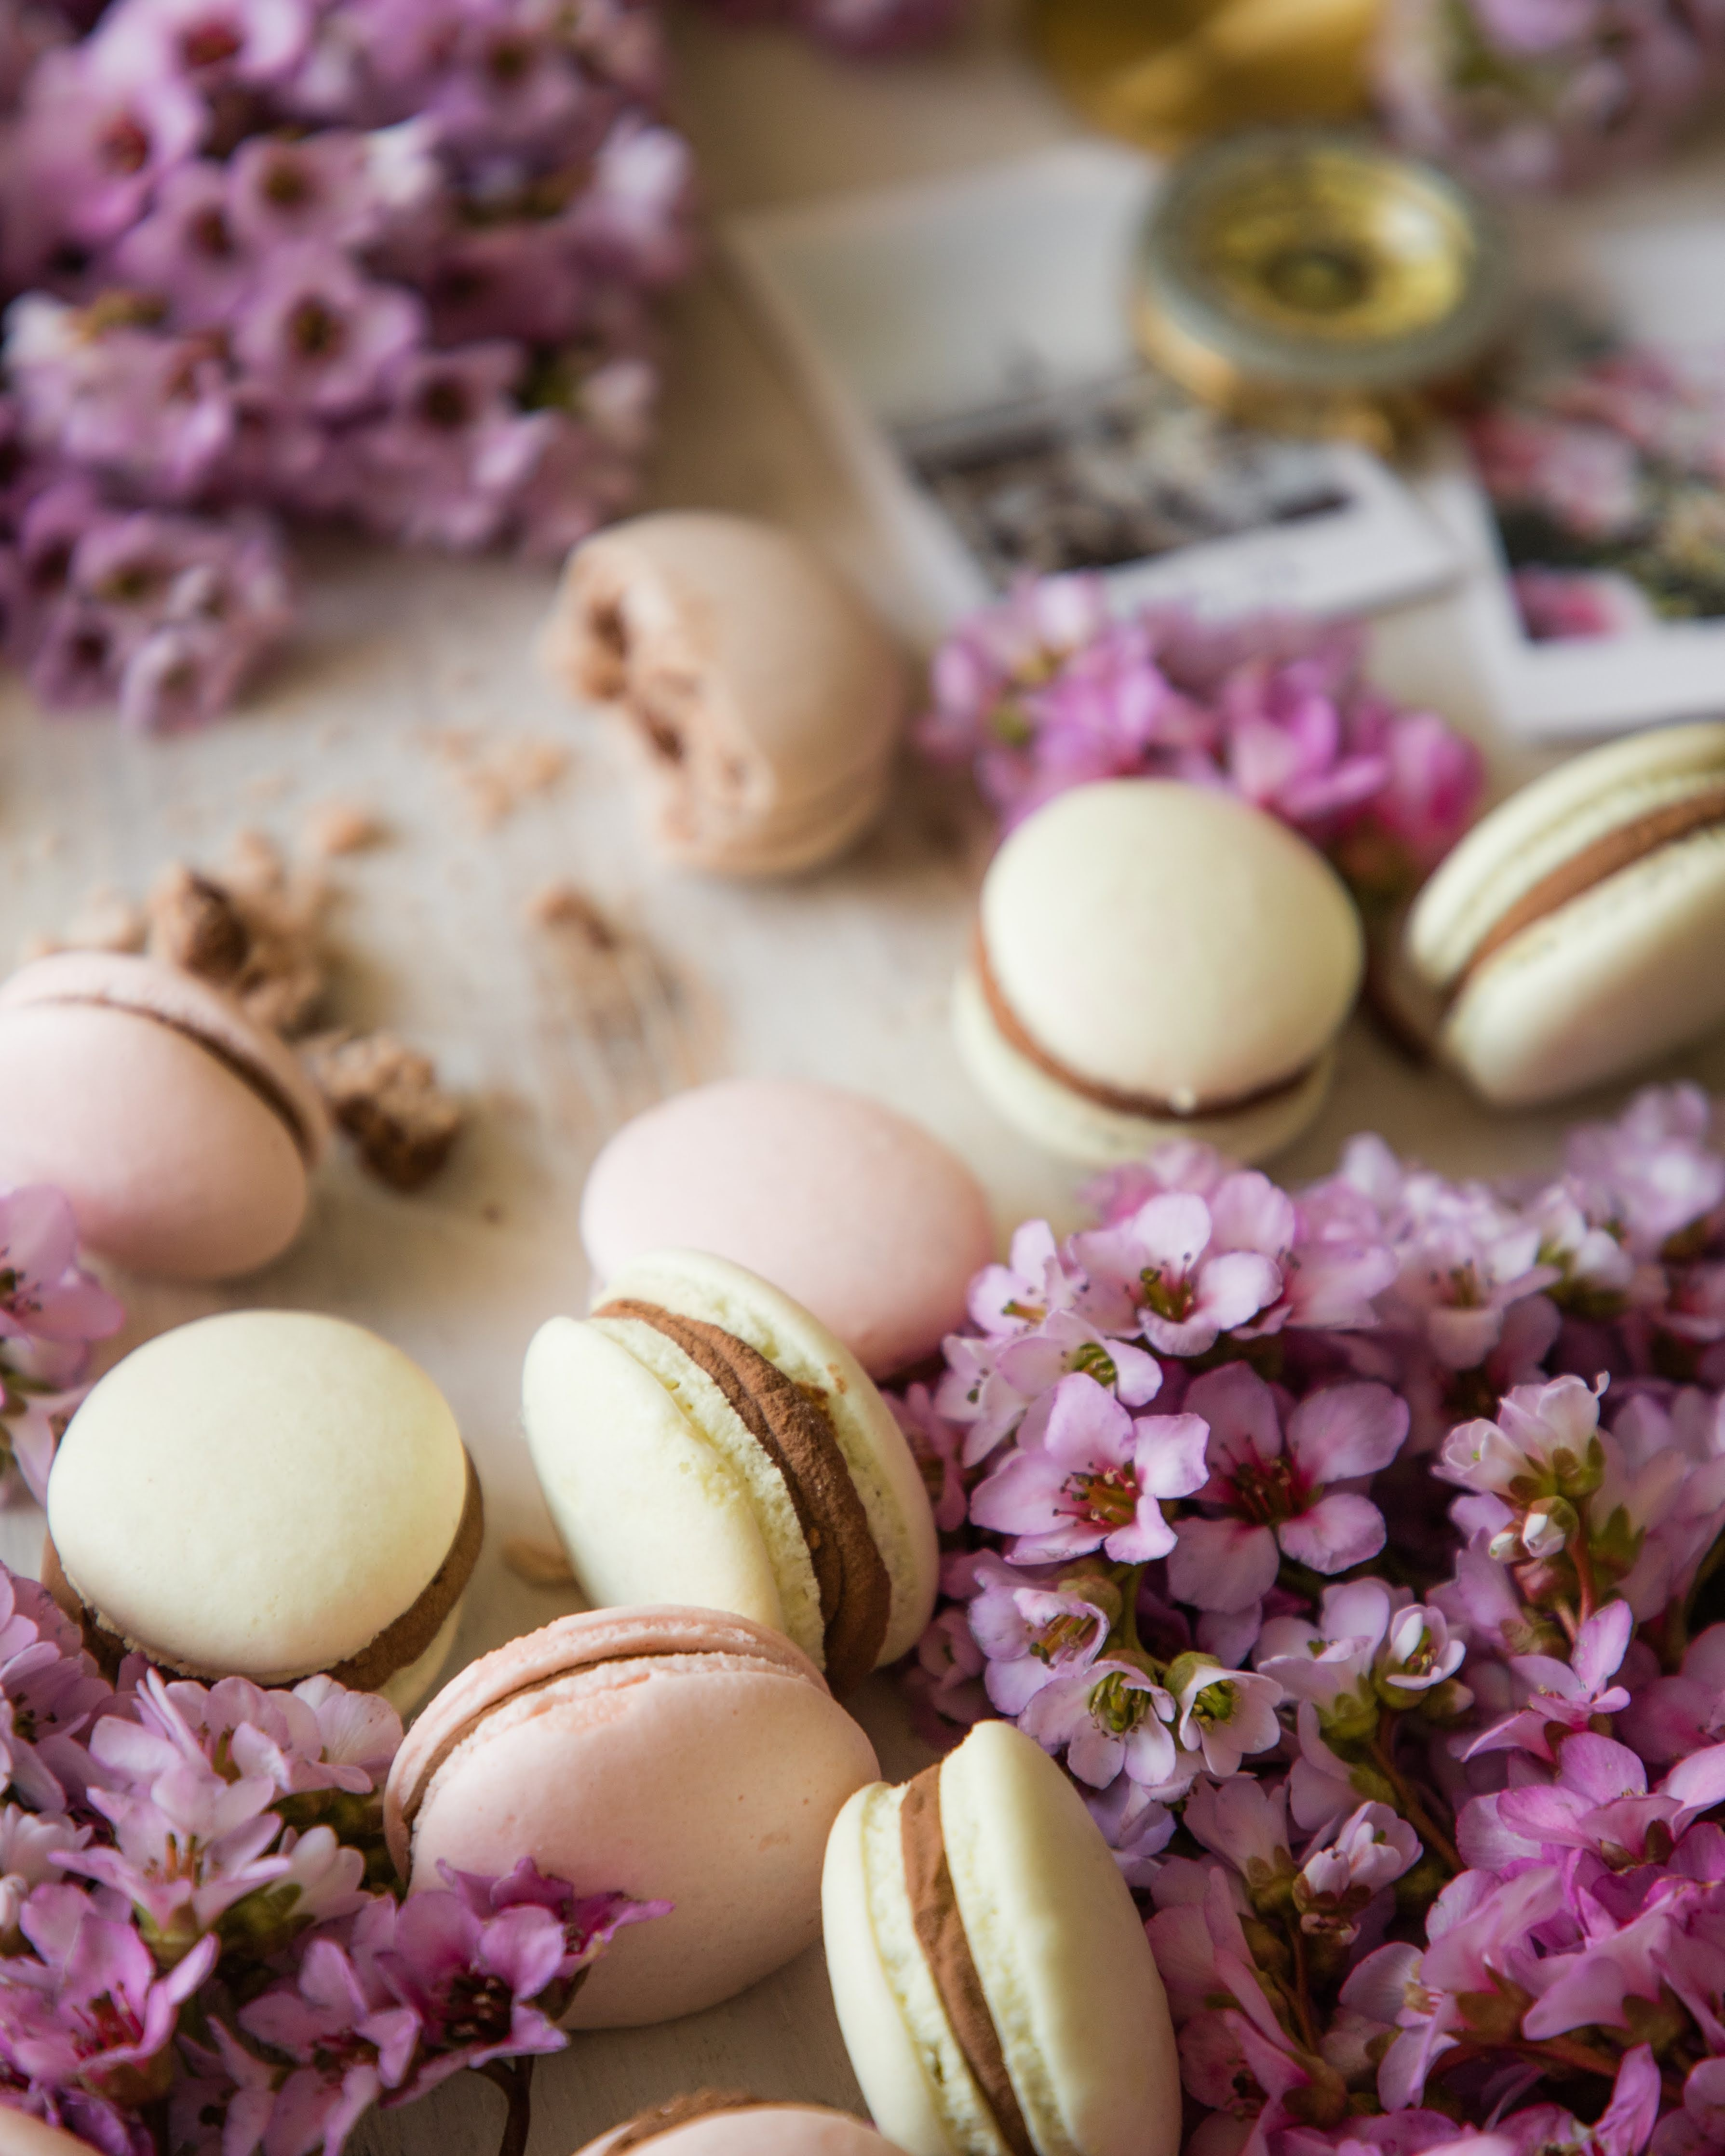 French Macarons in spring flowers and vintage set up | Photo by Jovan Vasiljević Photography via Unsplash